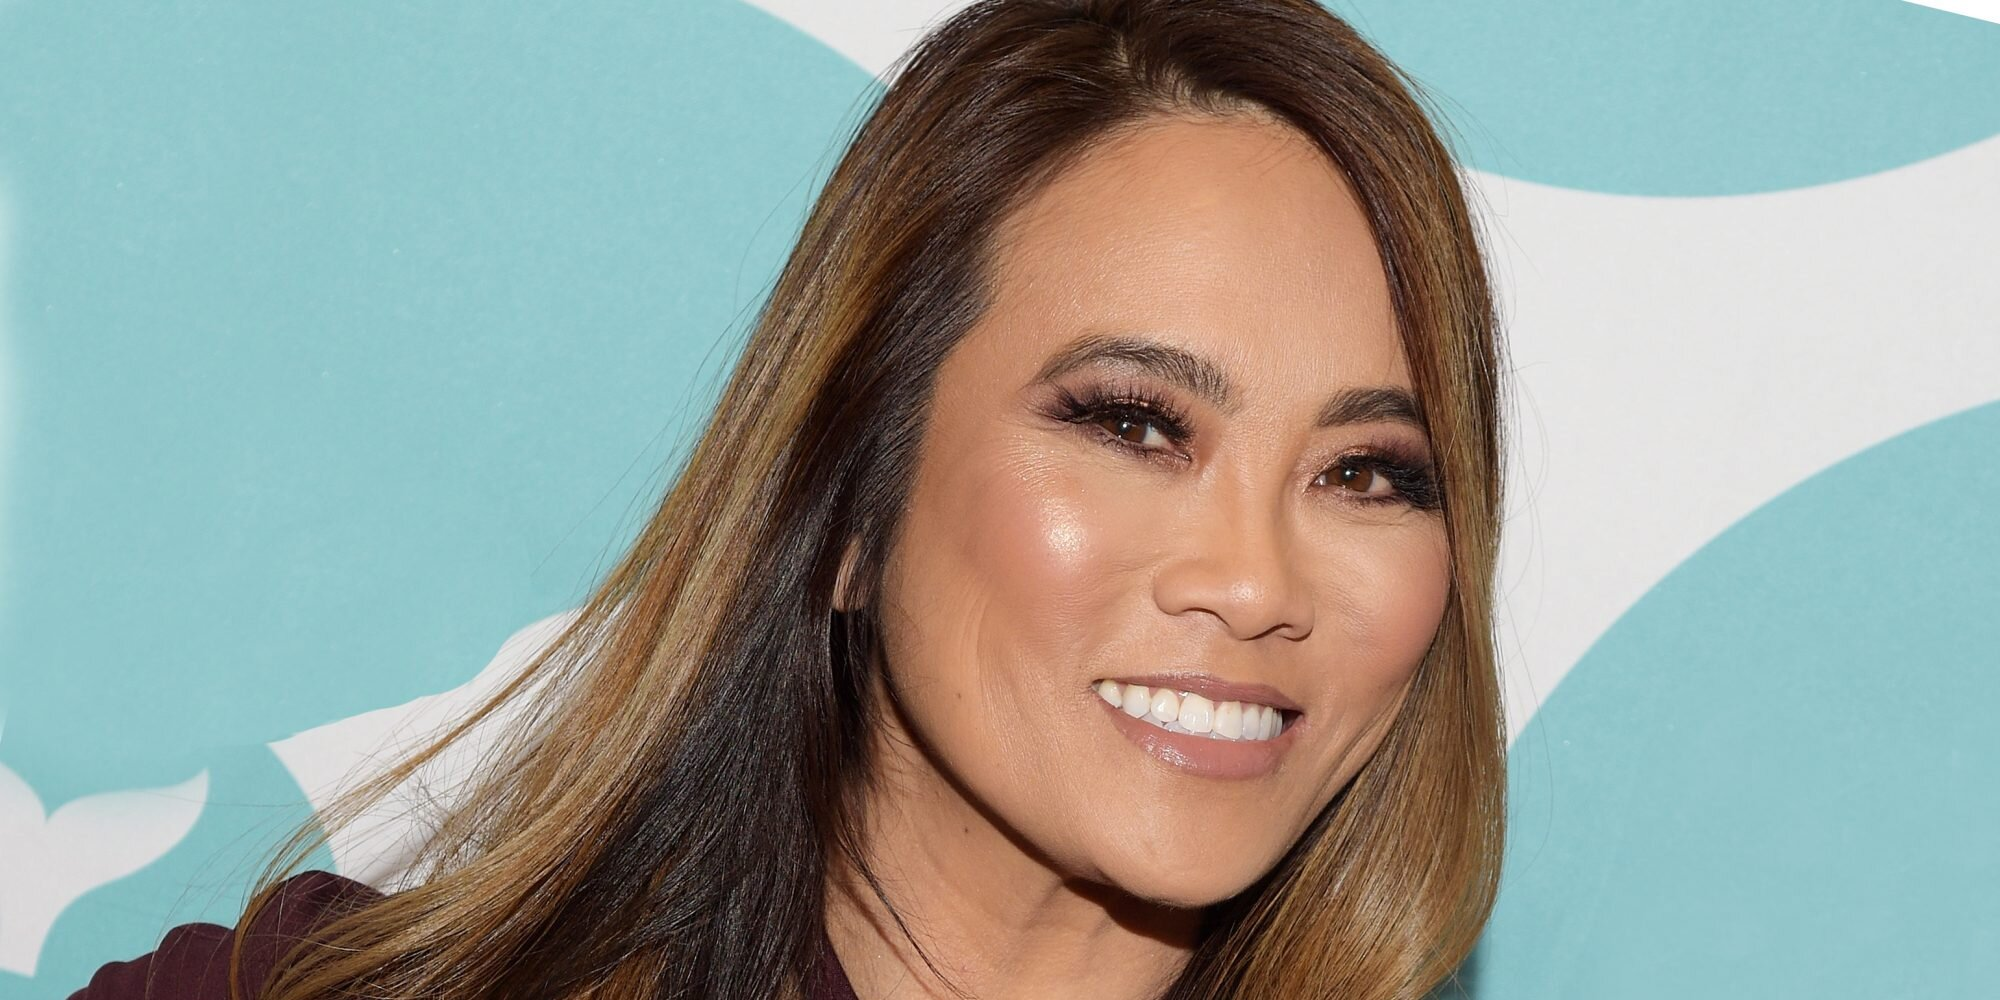 We Asked Dr. Pimple Popper How to Pop a Pimple Safely (If You Absolutely Must)